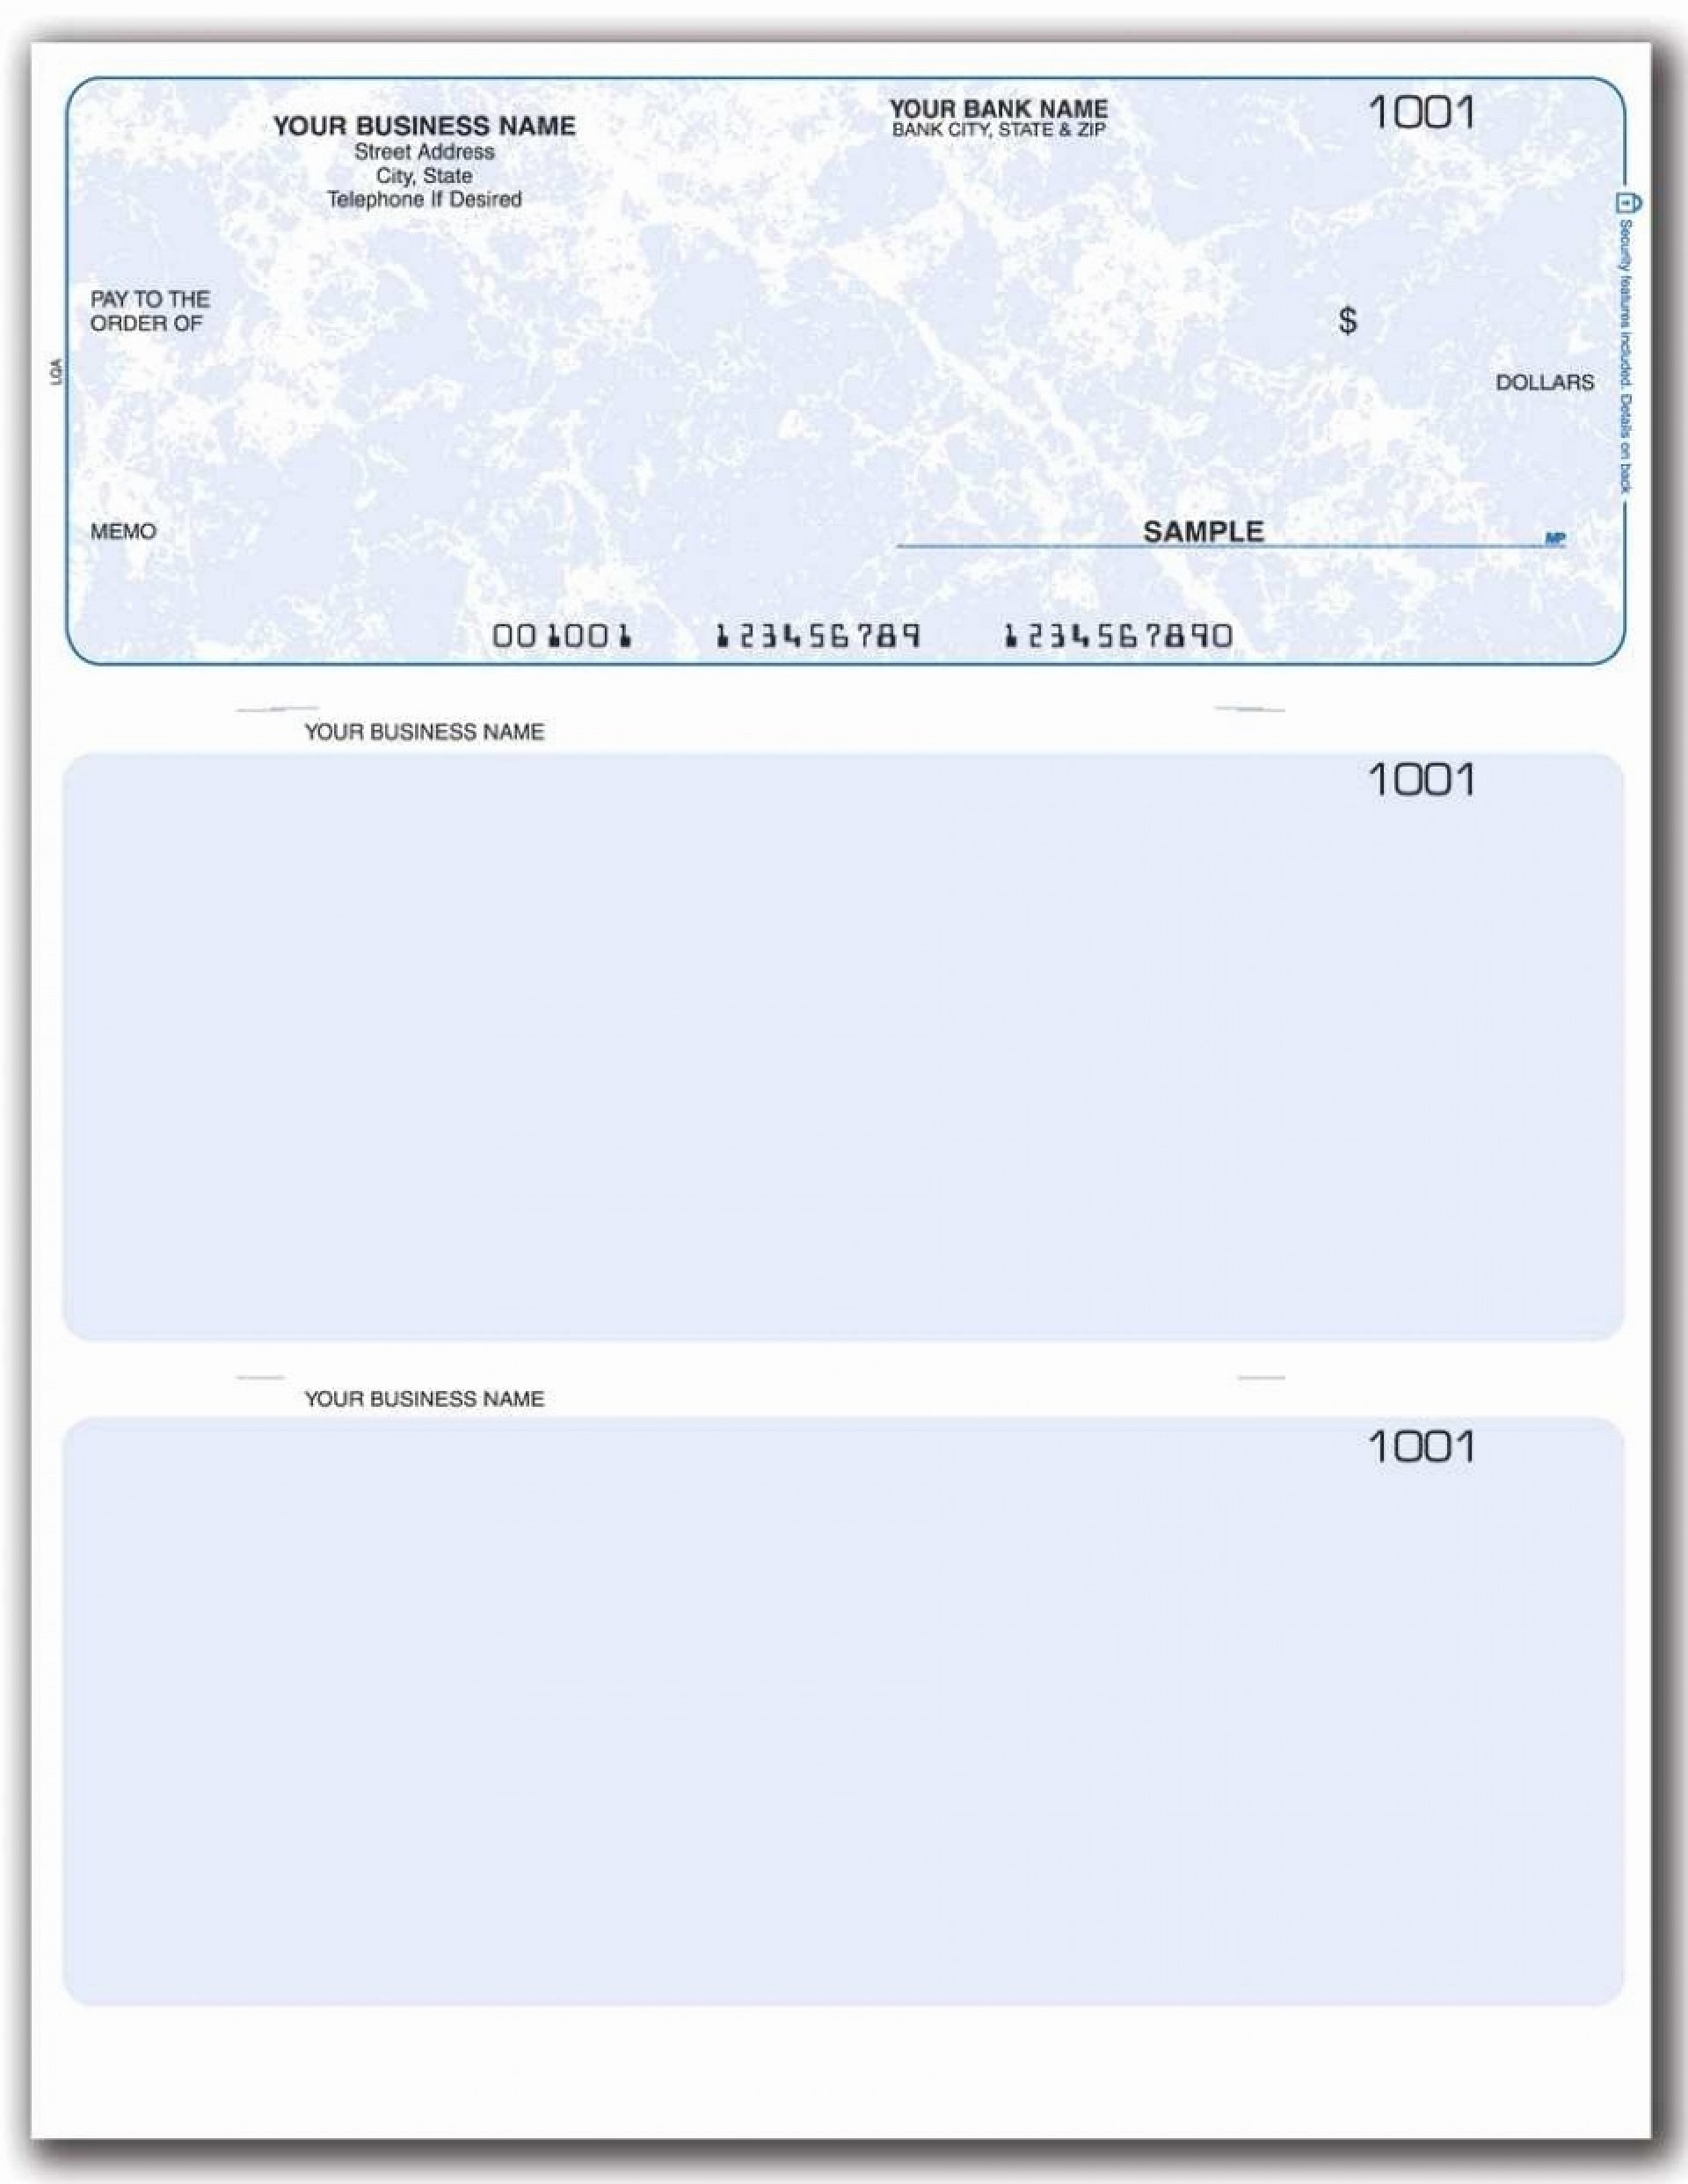 002 Simple Busines Check Template Word Example  Free Blank Document1920